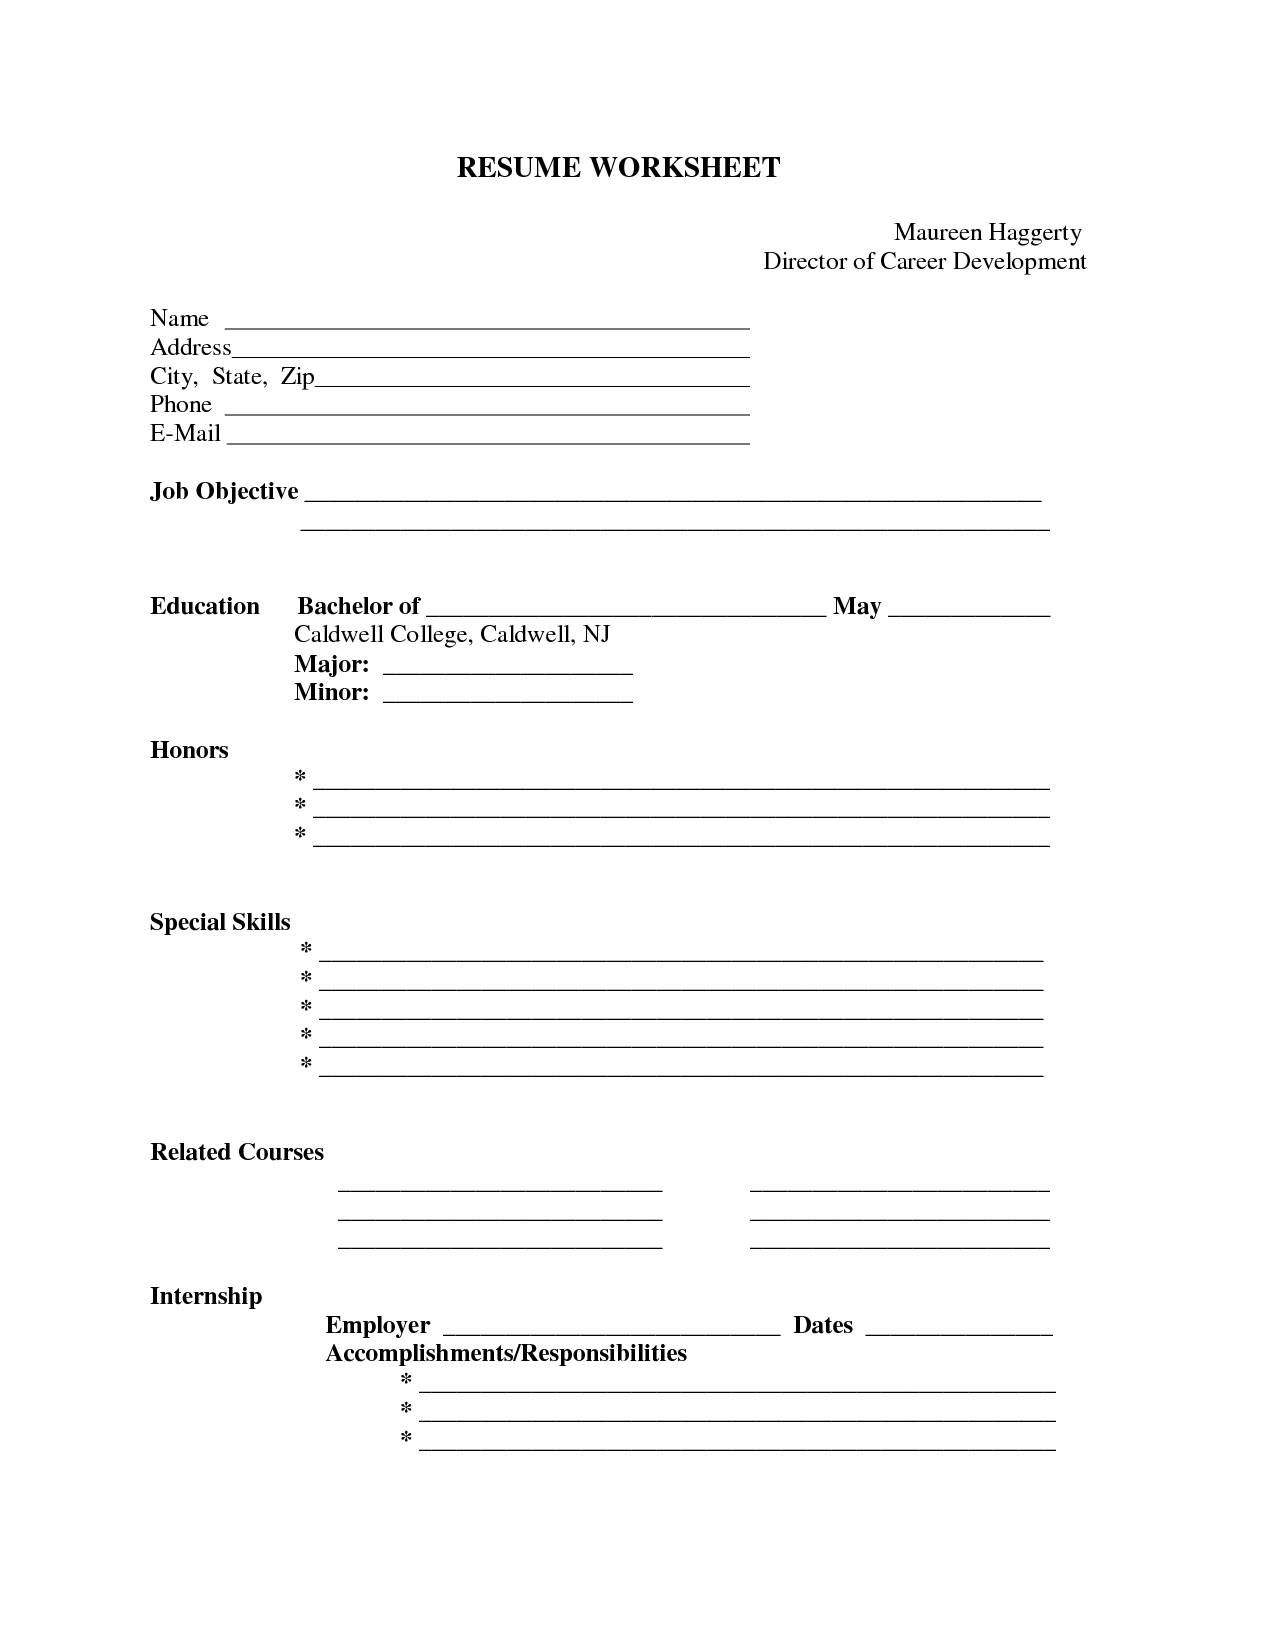 Free Fill In Resume Template Free Printable Blank Resume Forms  Httpwww.resumecareer .